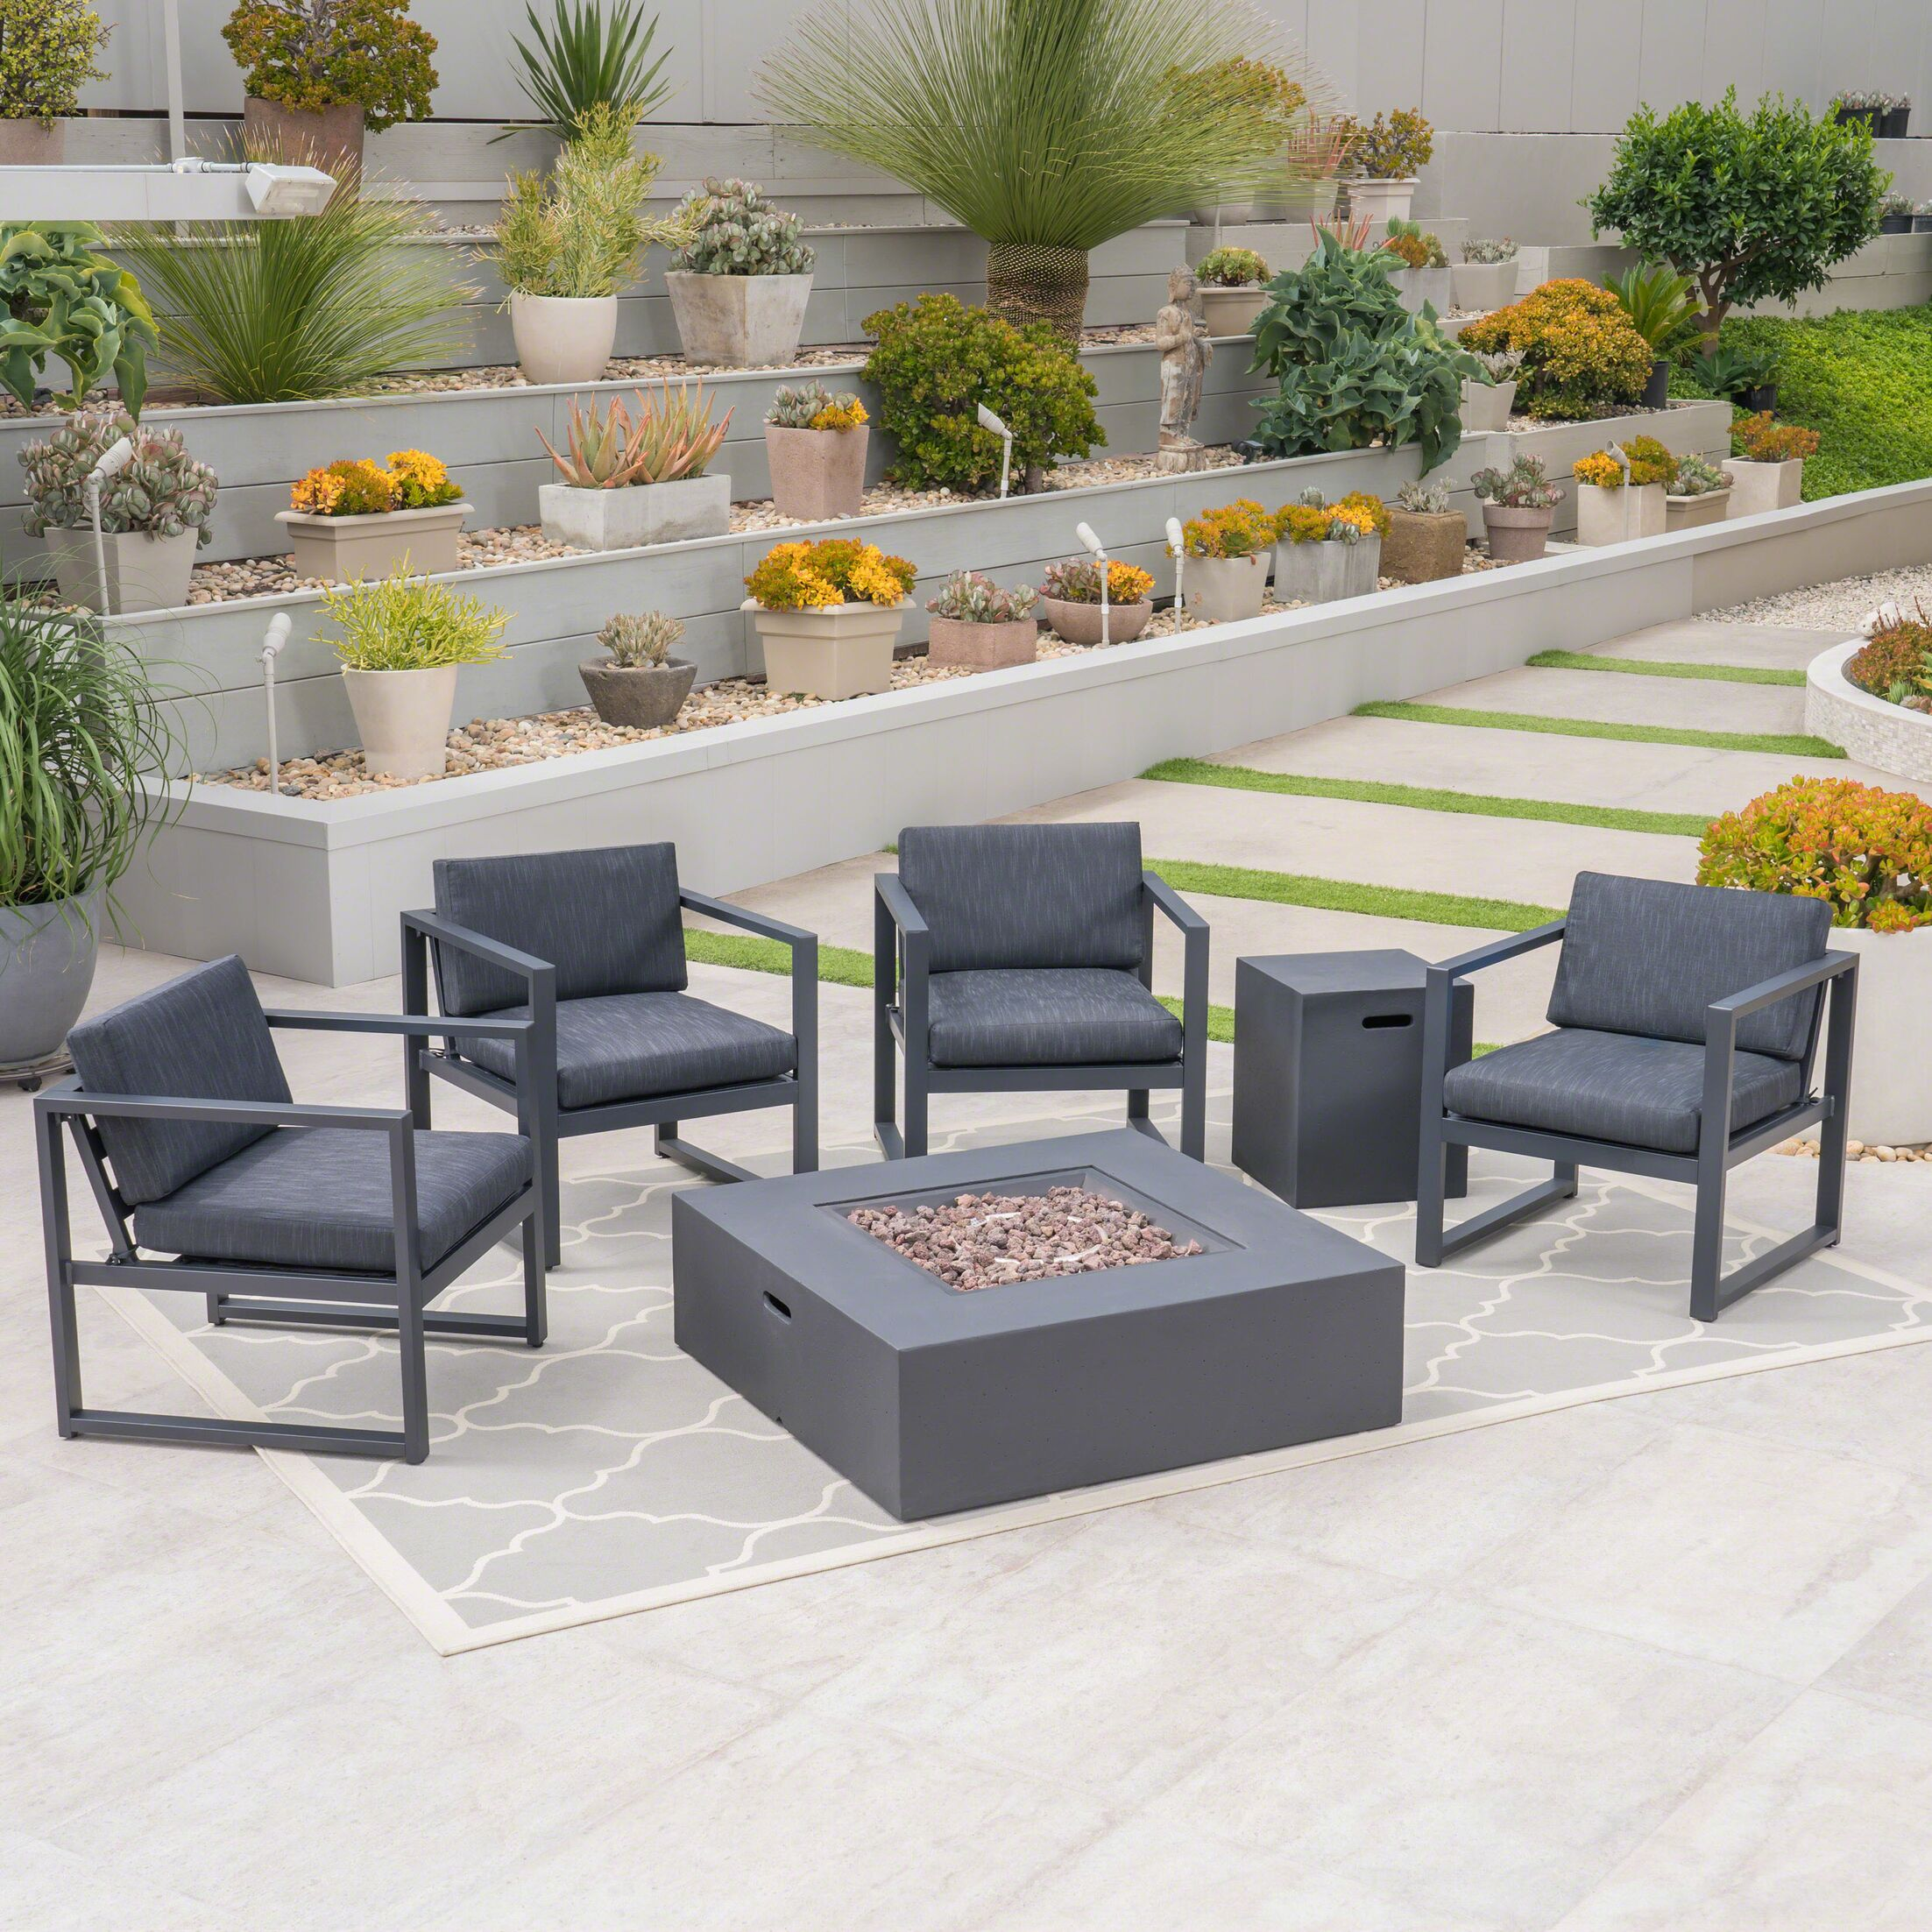 Seabrooks Outdoor 6 Piece Sofa Seating Group with Cushions